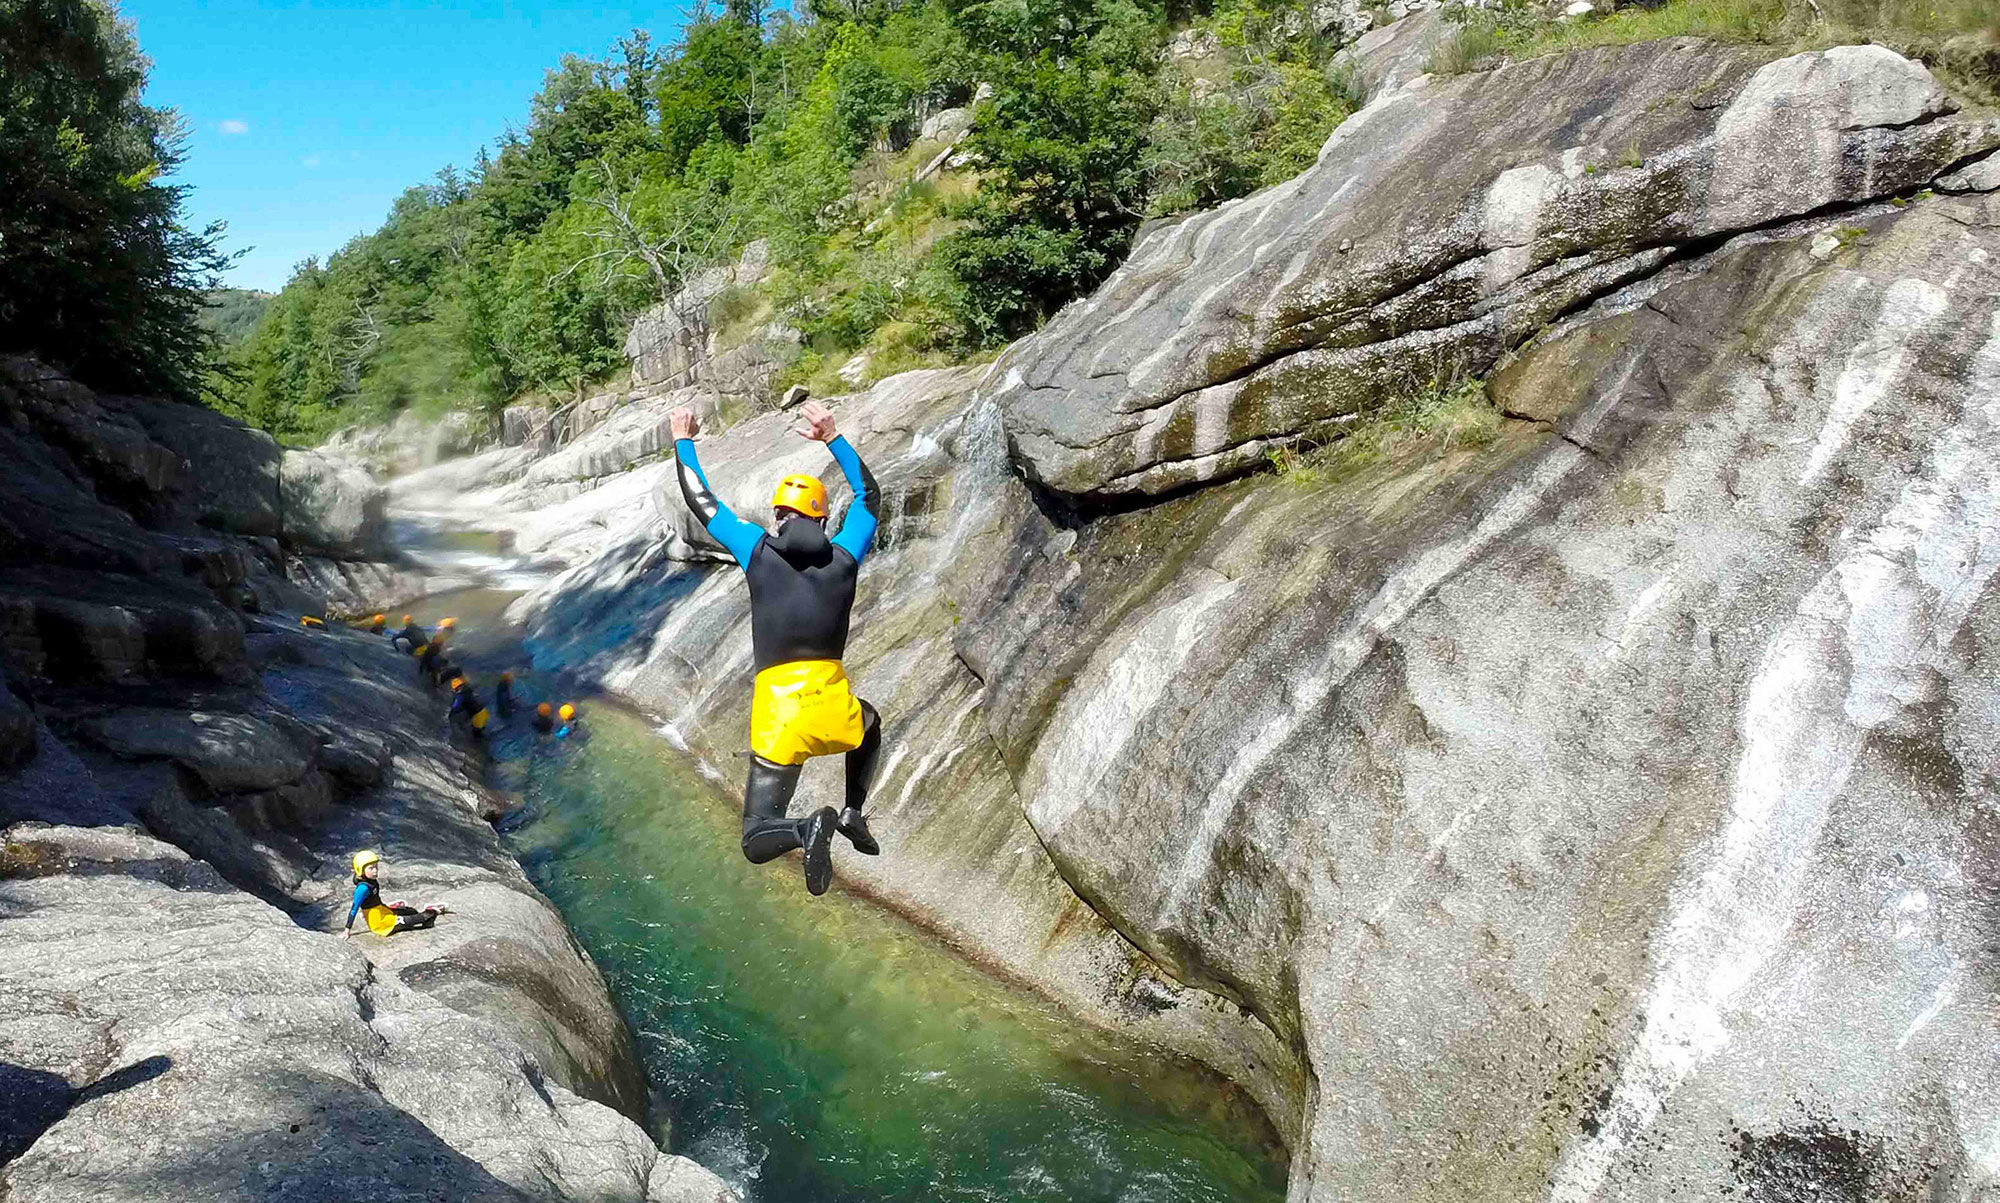 Canyon famille : Sources du Tarn